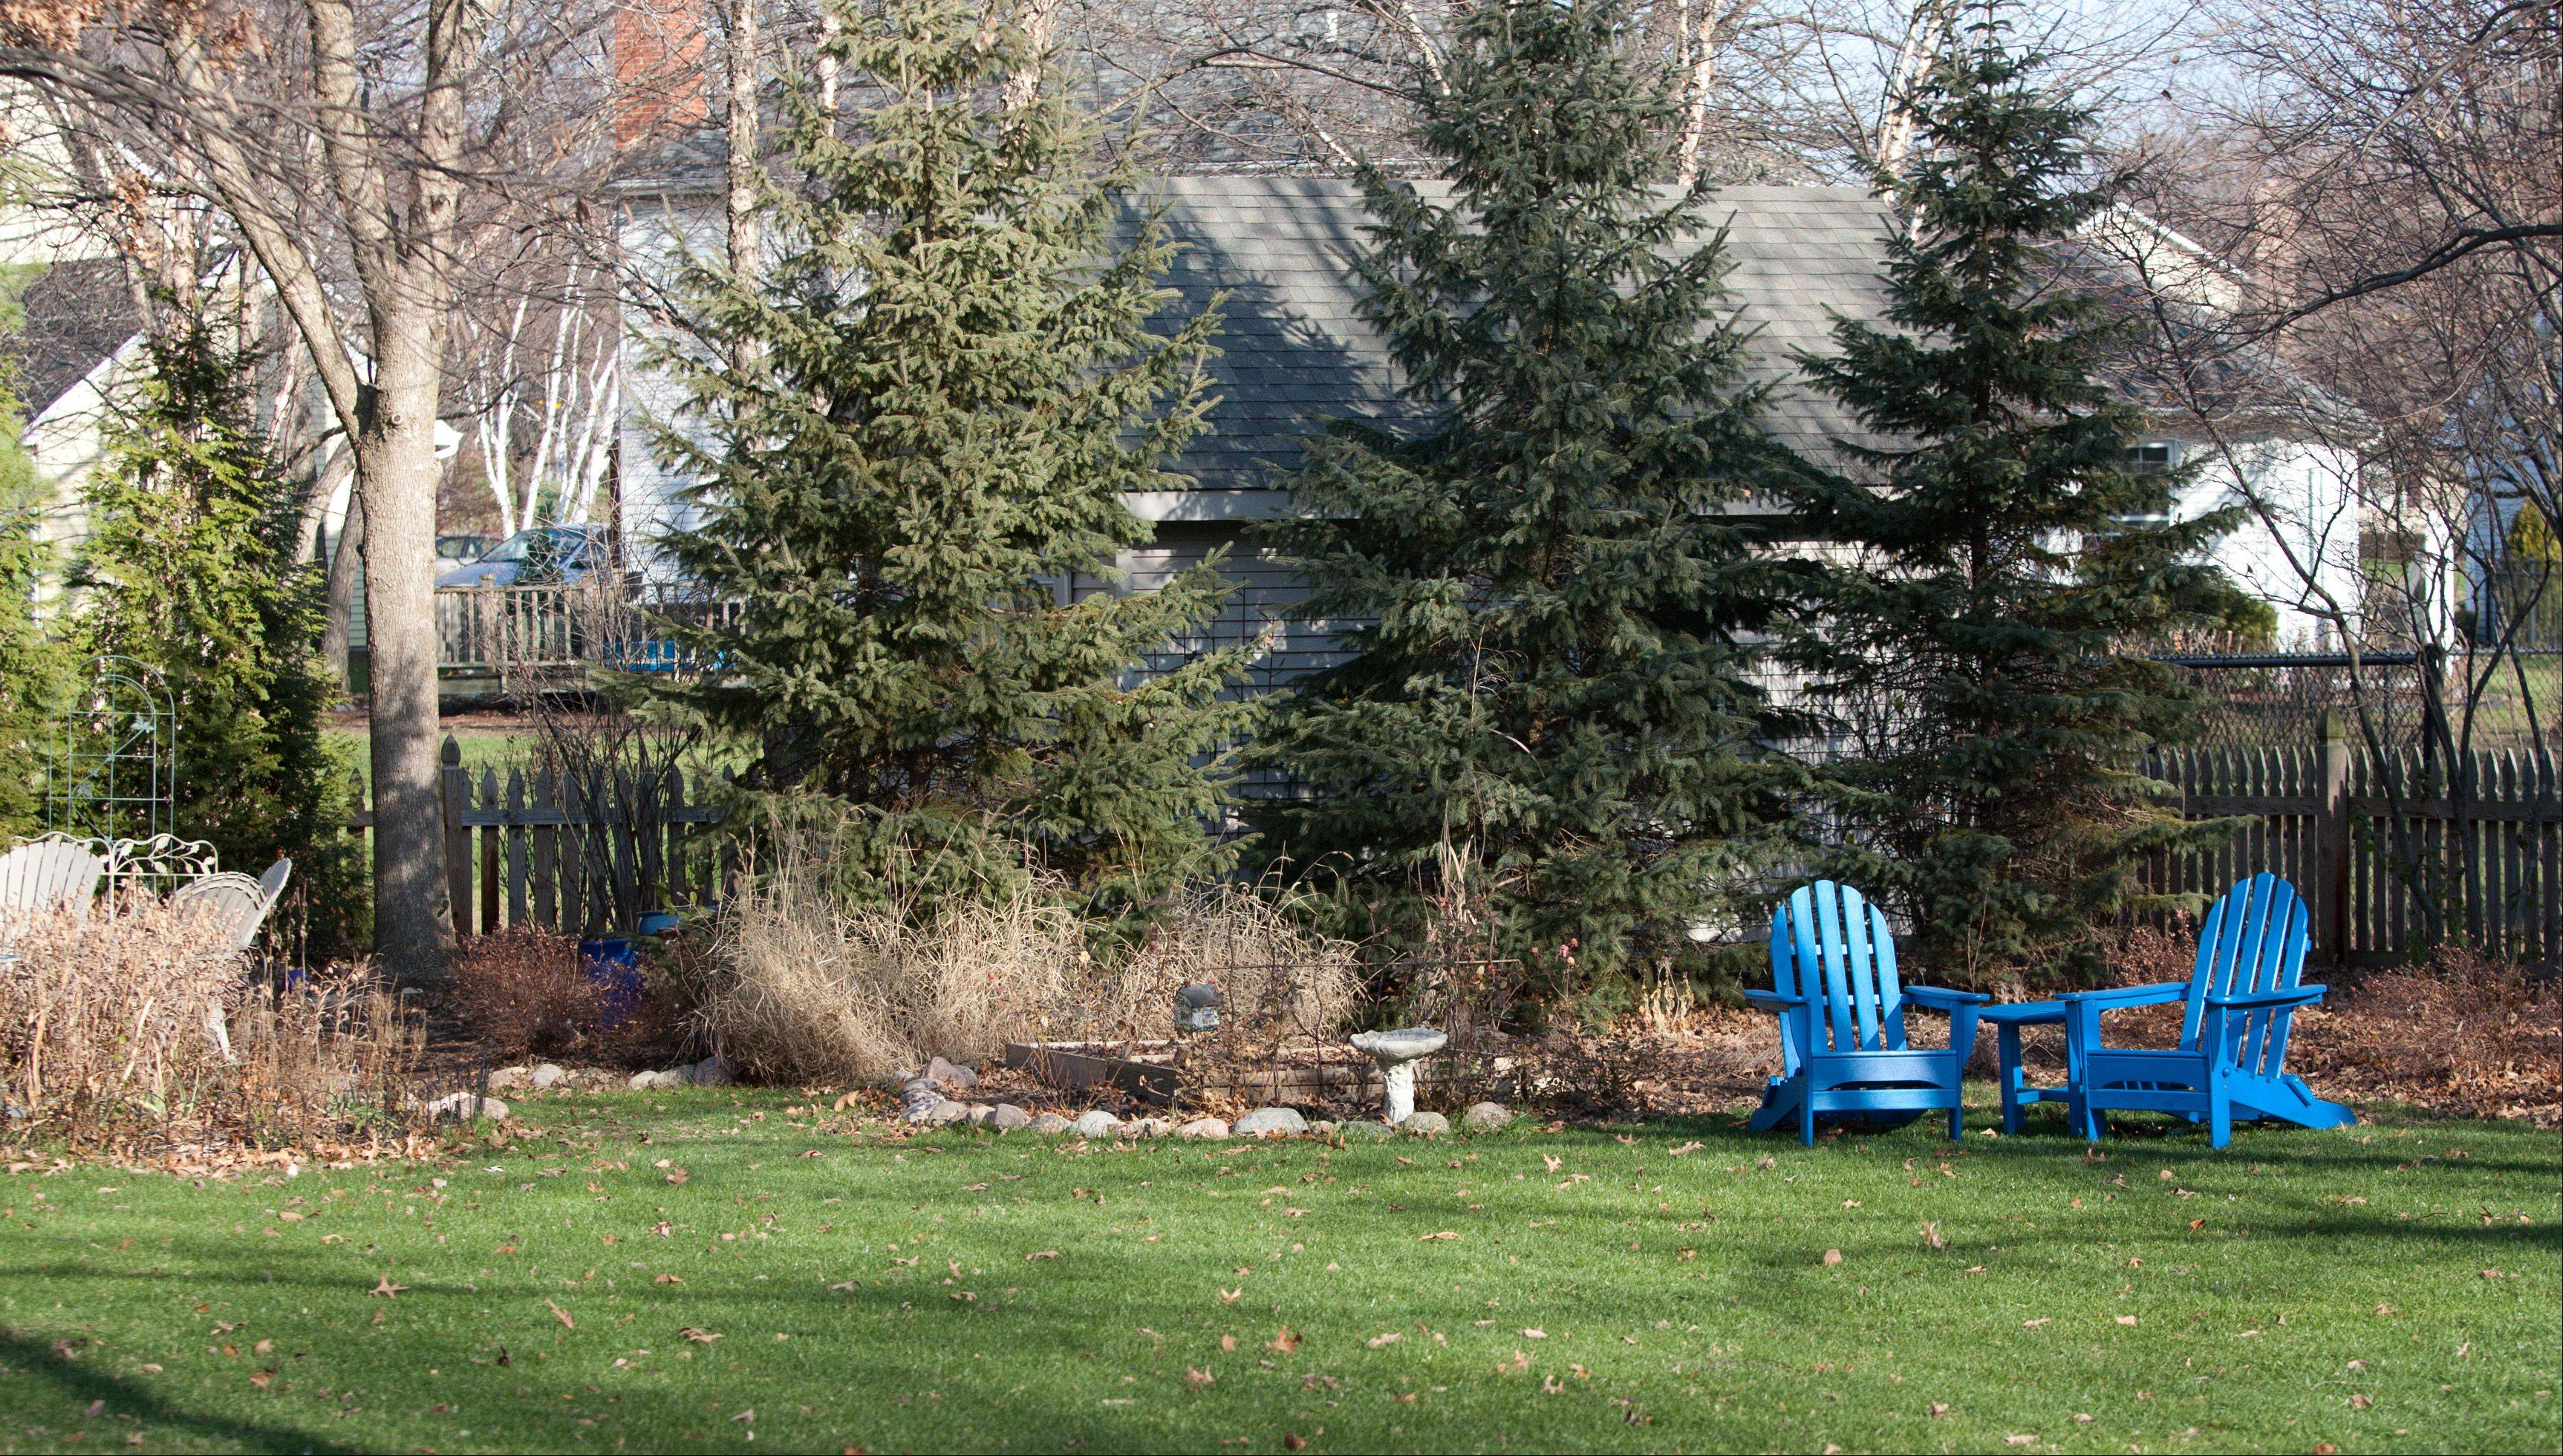 With a goal of creating a wild area in the back yard, with curved lines and focal points for interest, Laura Christensen transformed her Wheaton landscape. These blue chairs stand out all year long, but provide a strong pop of color against a snowy winter landscape.